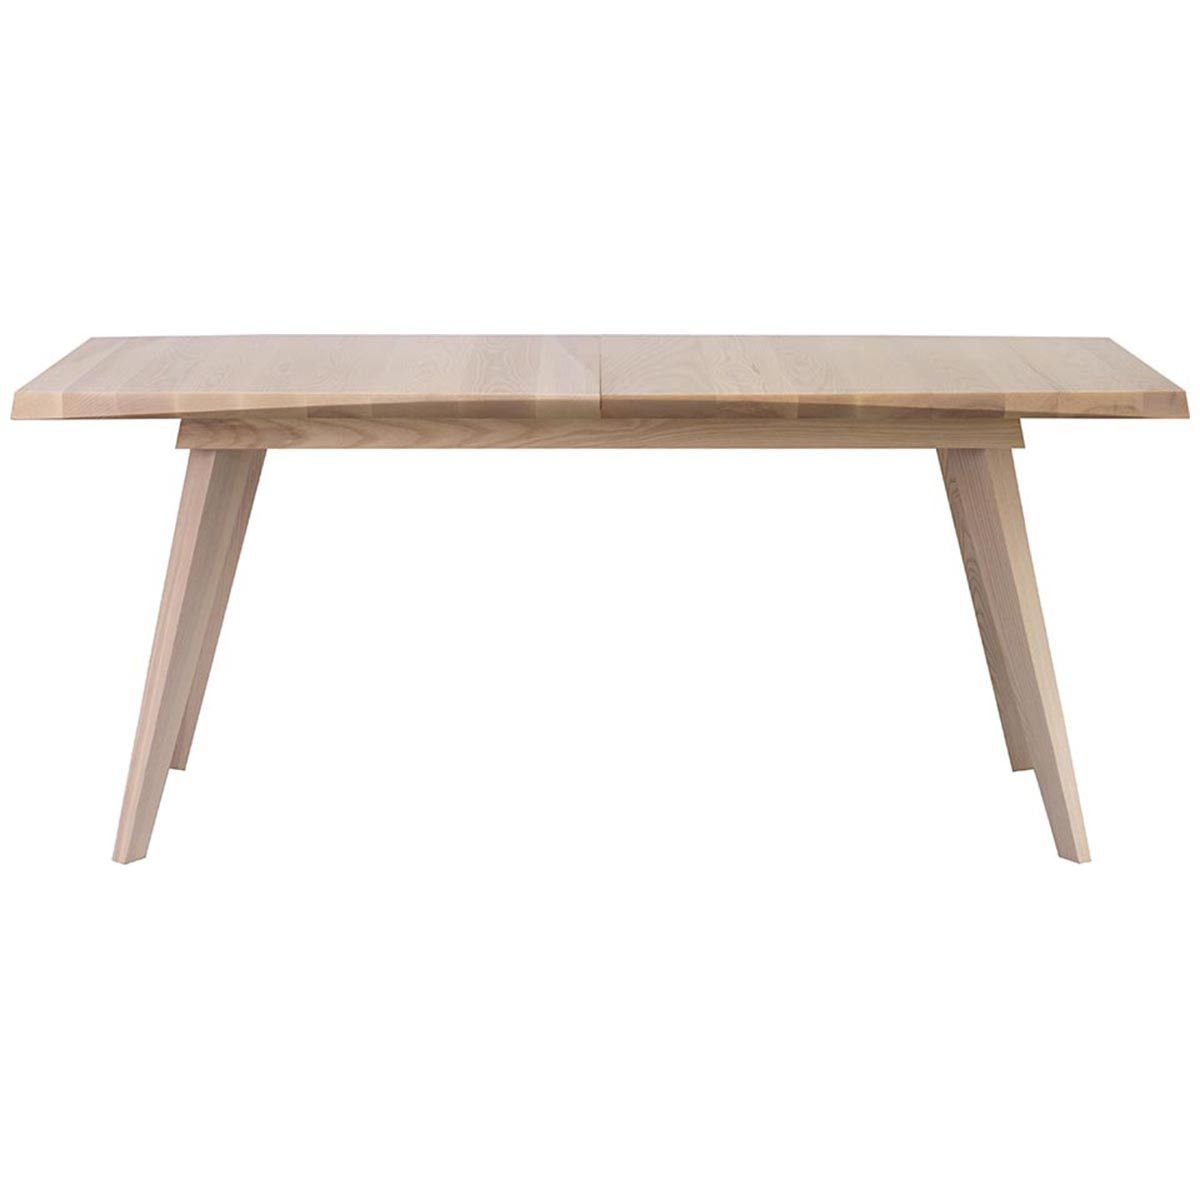 Copeland furniture 36 axis extension table